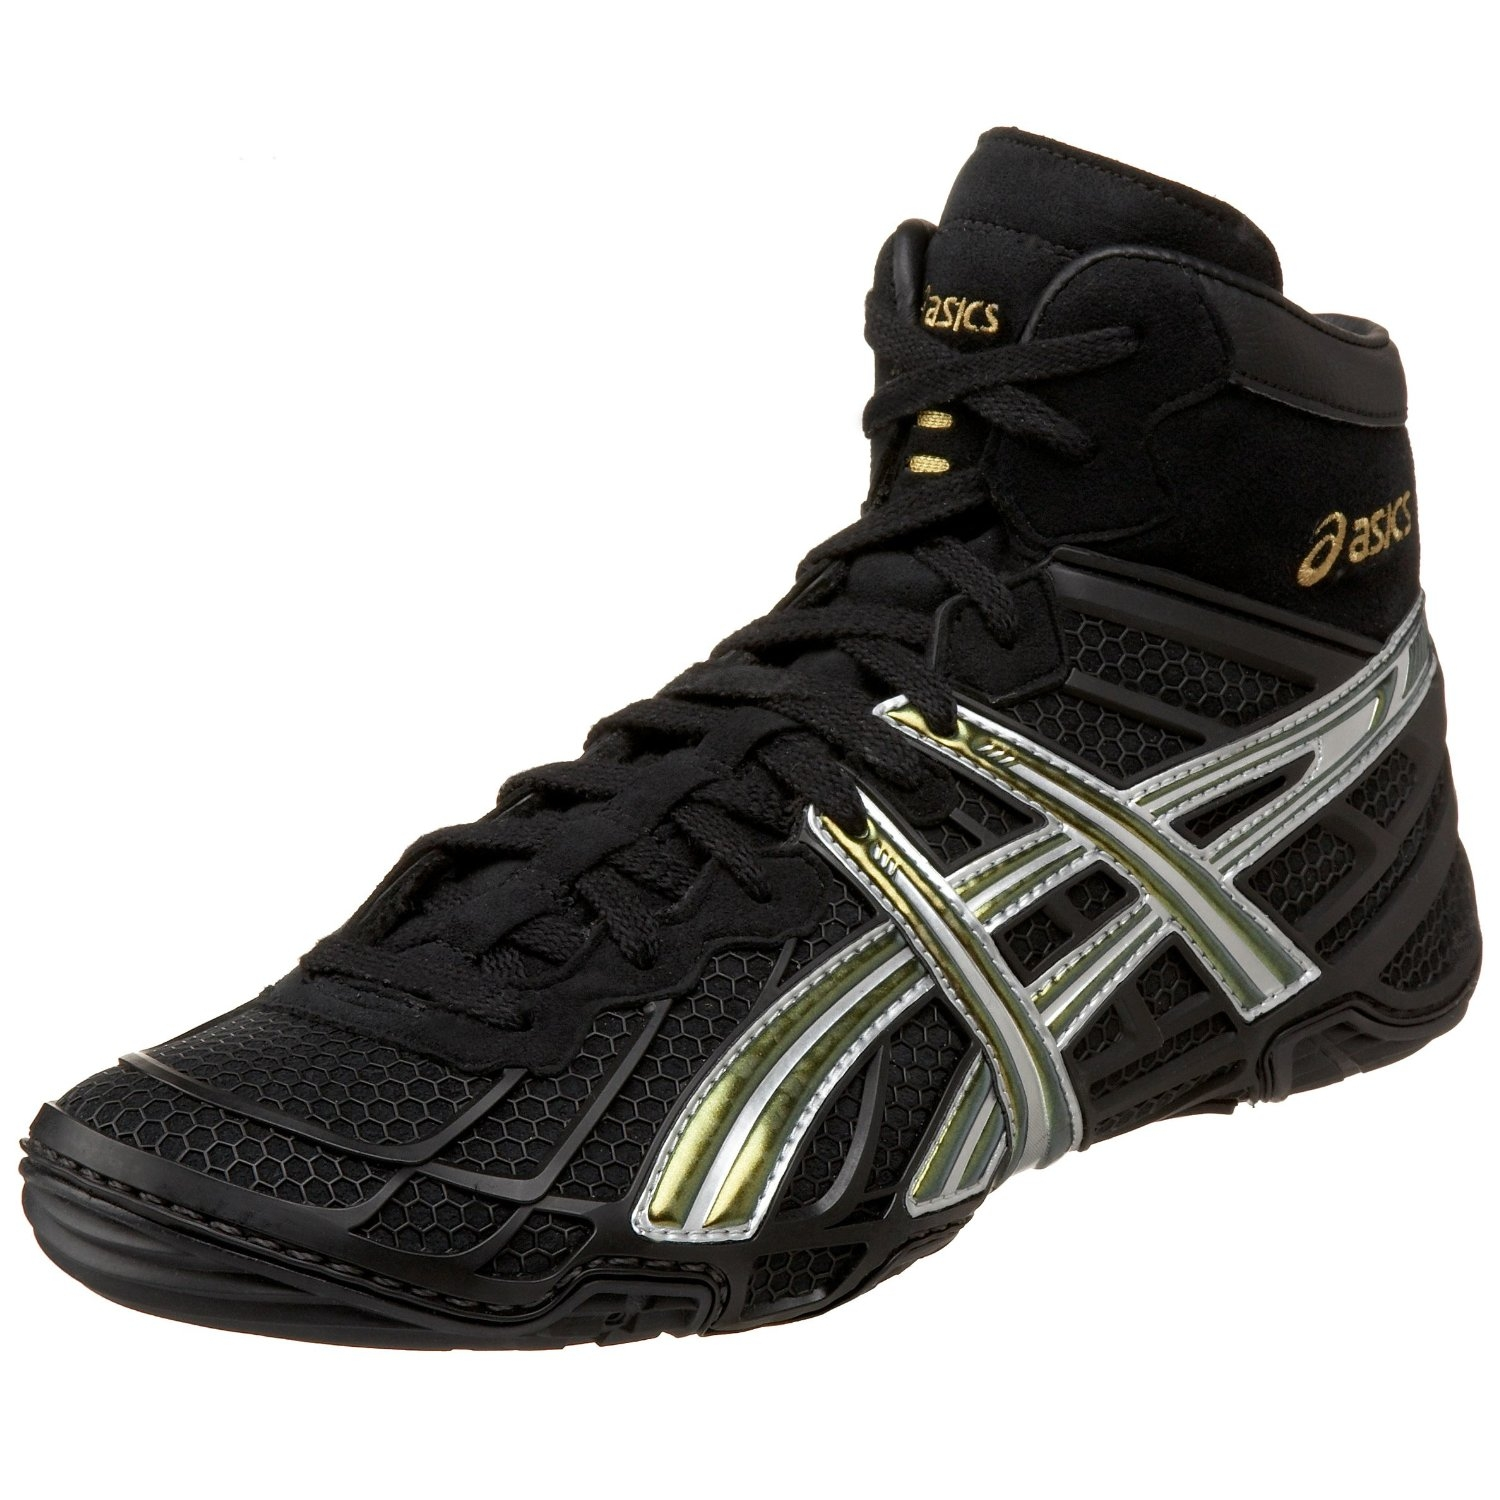 asics dan gable ultimate 2 wrestling shoes.